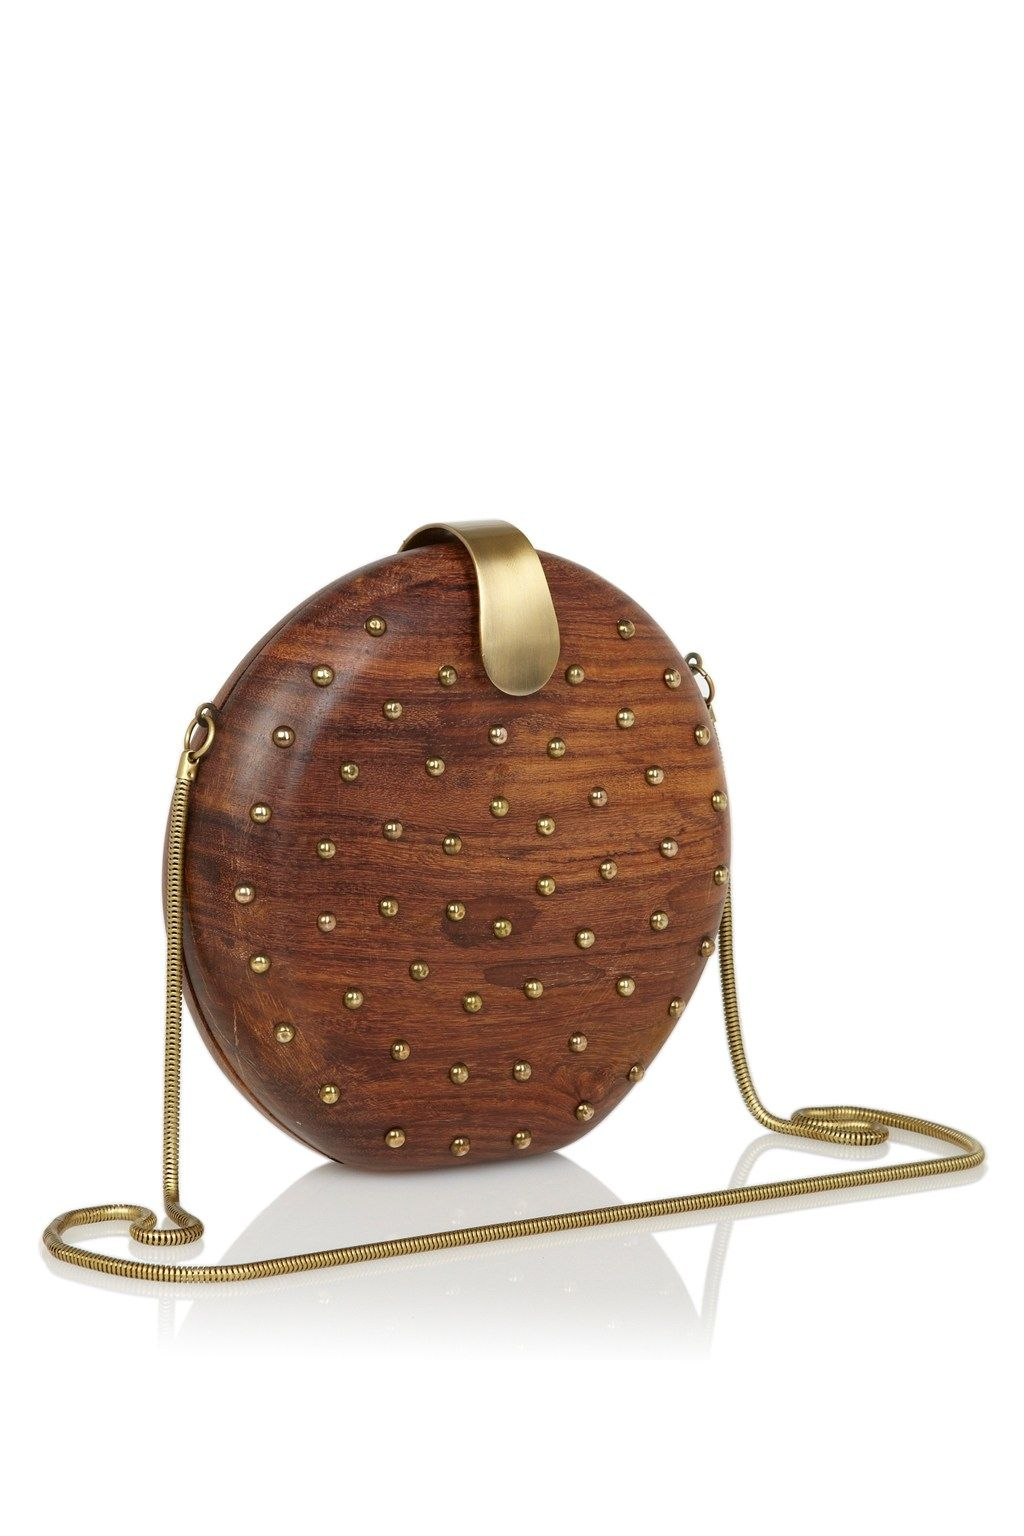 Spot Studded Clutch - Handbags - French Connection Usa